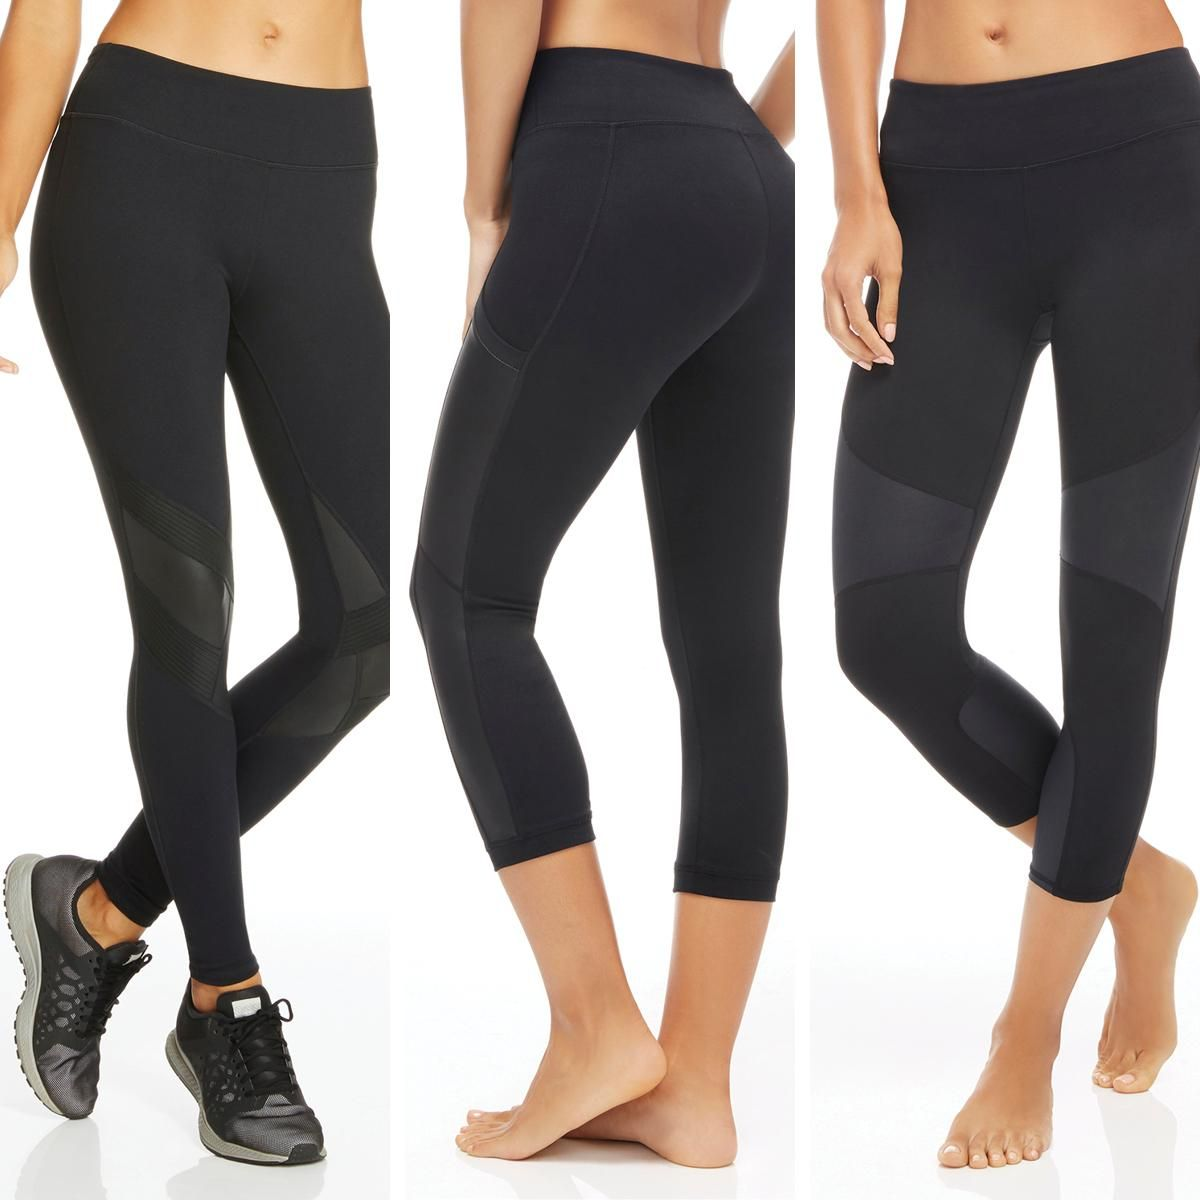 High fashion paneled workout leggings for the gym or a night out.